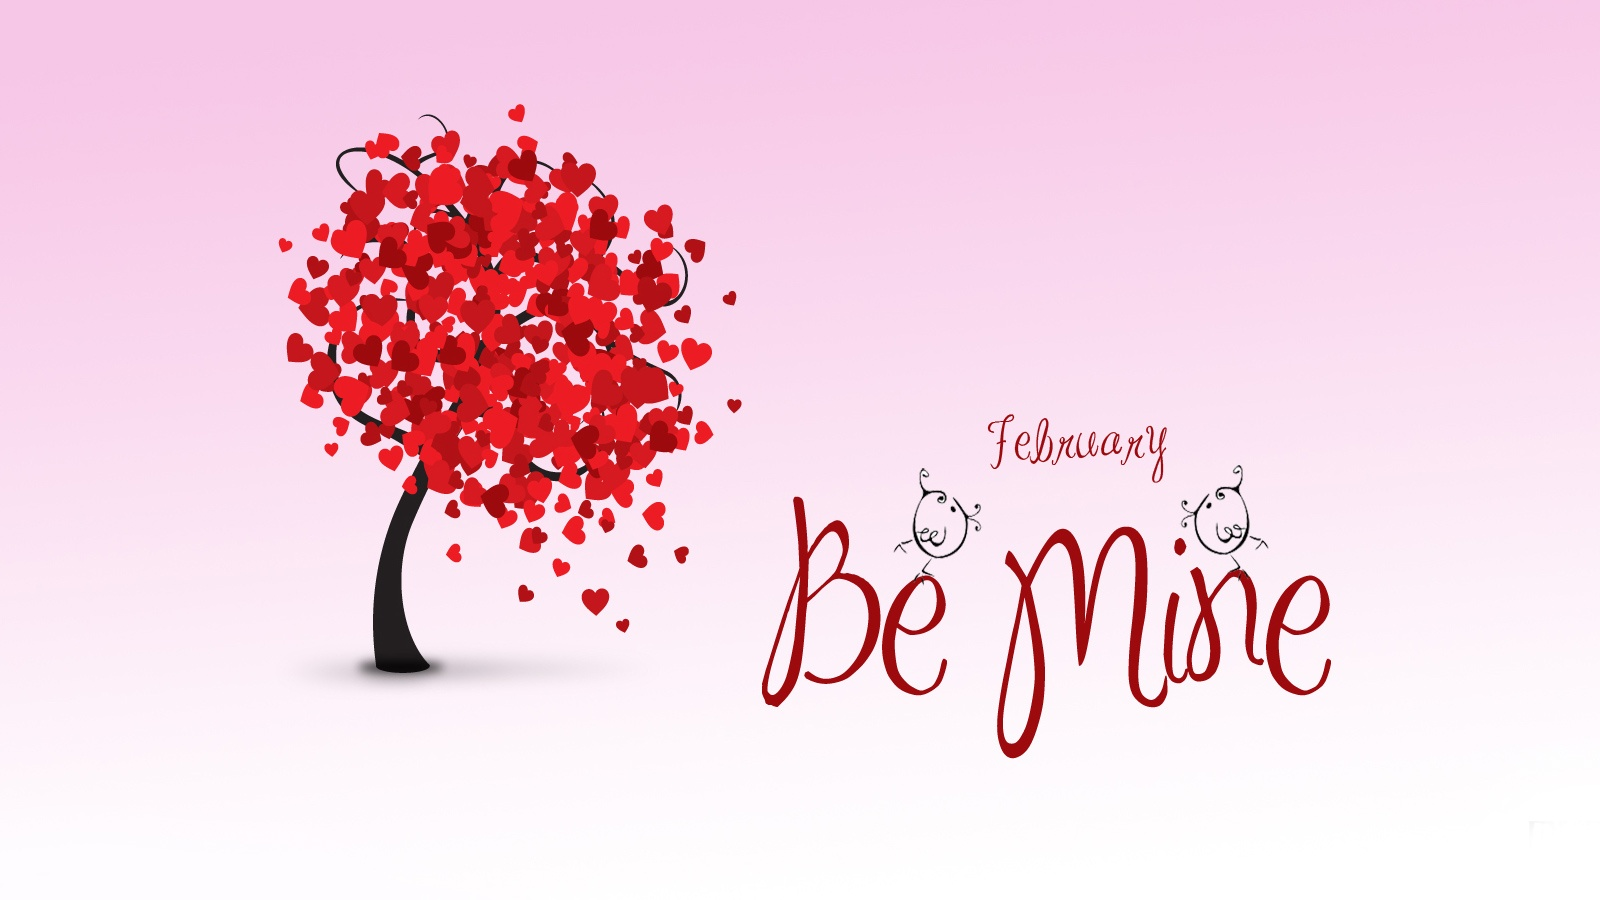 valentines day background wallpaper   Elimcarpentersdaughterco 1600x900